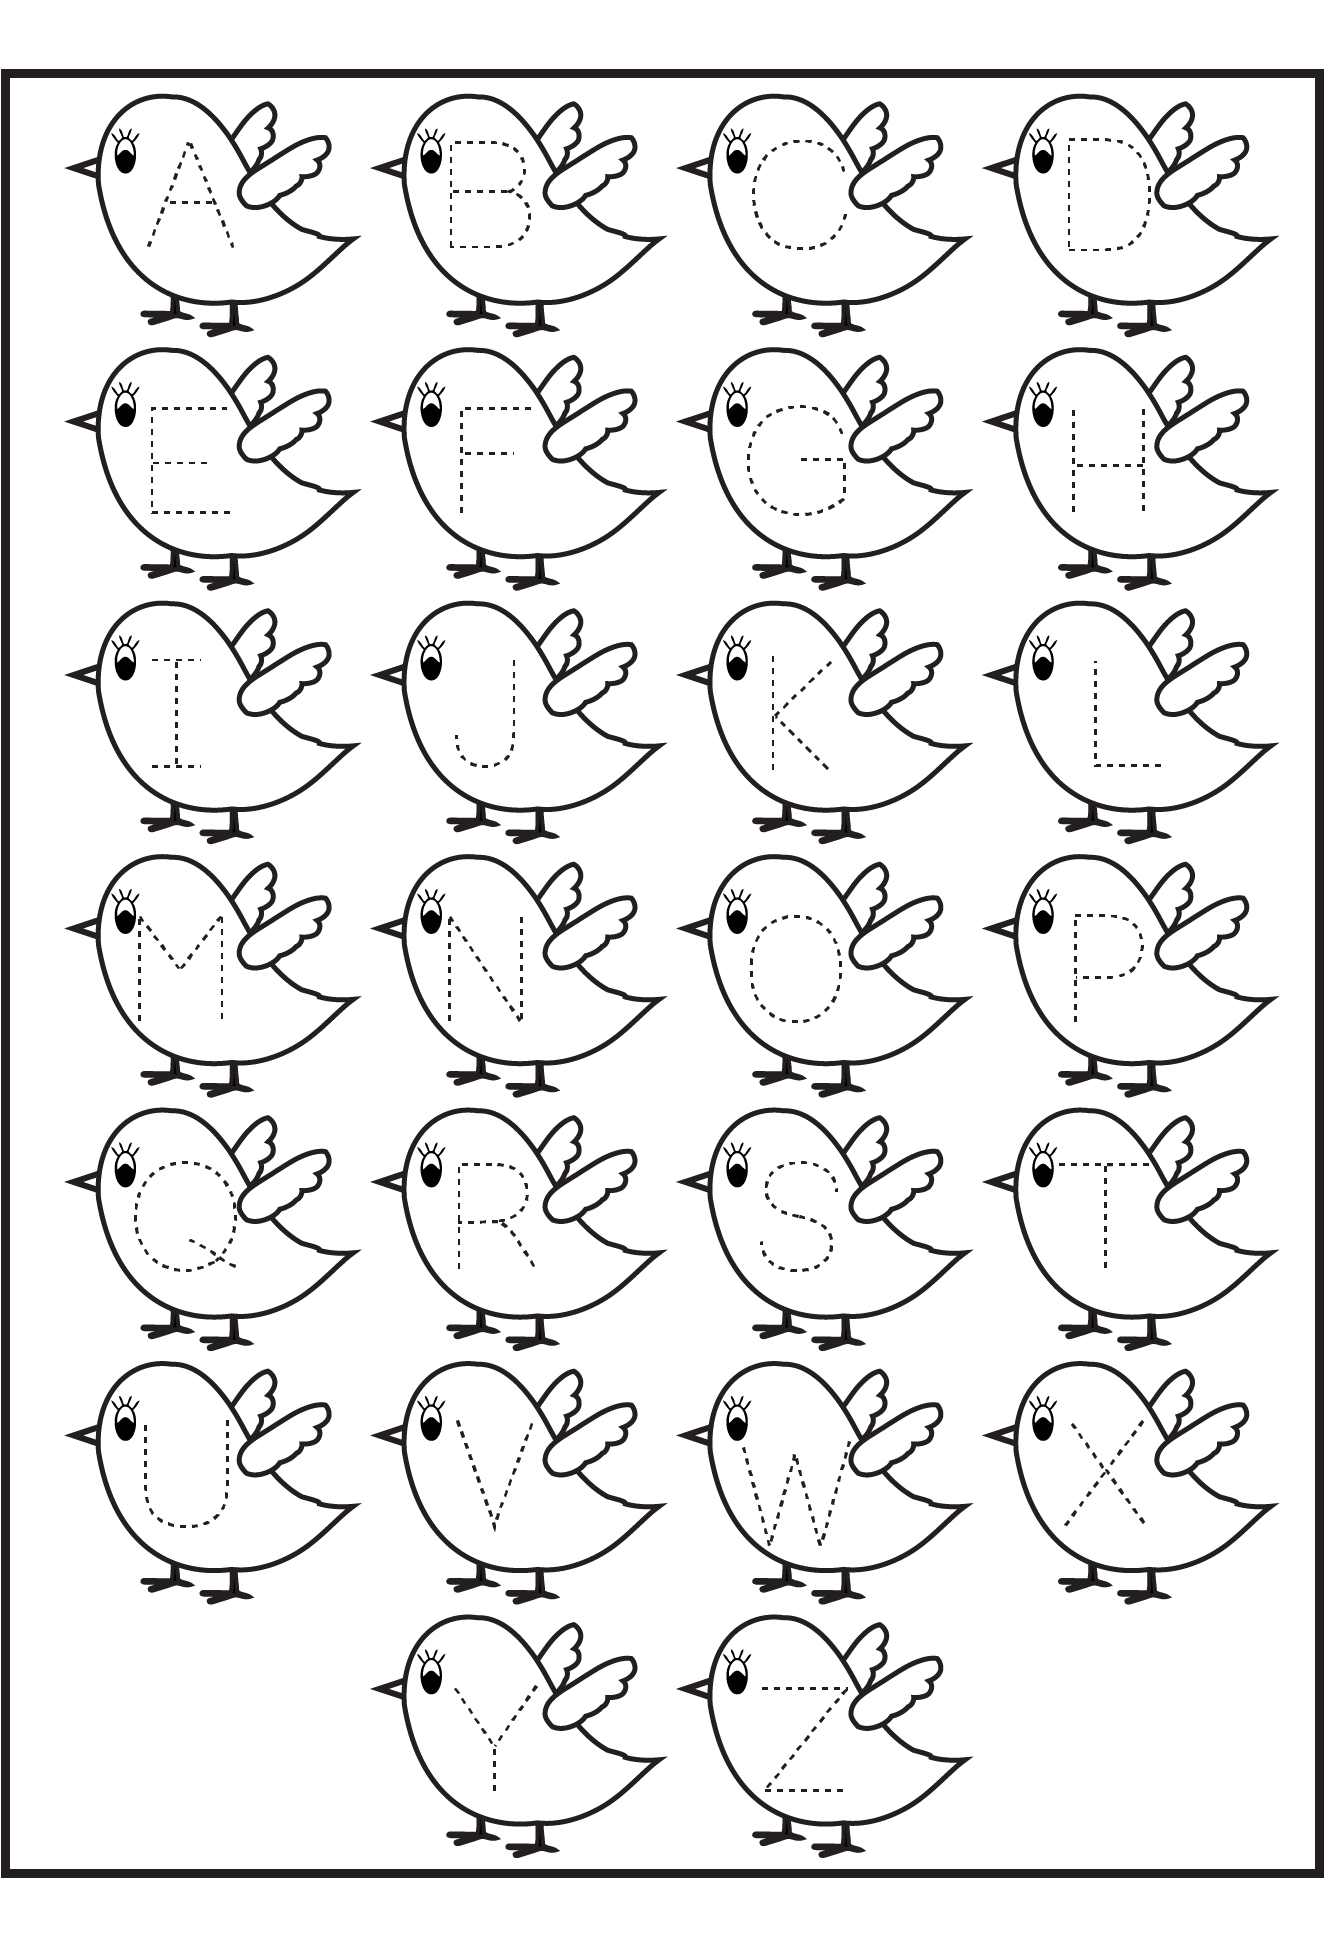 Letter Tracing Birds Printable Worksheets For Kids